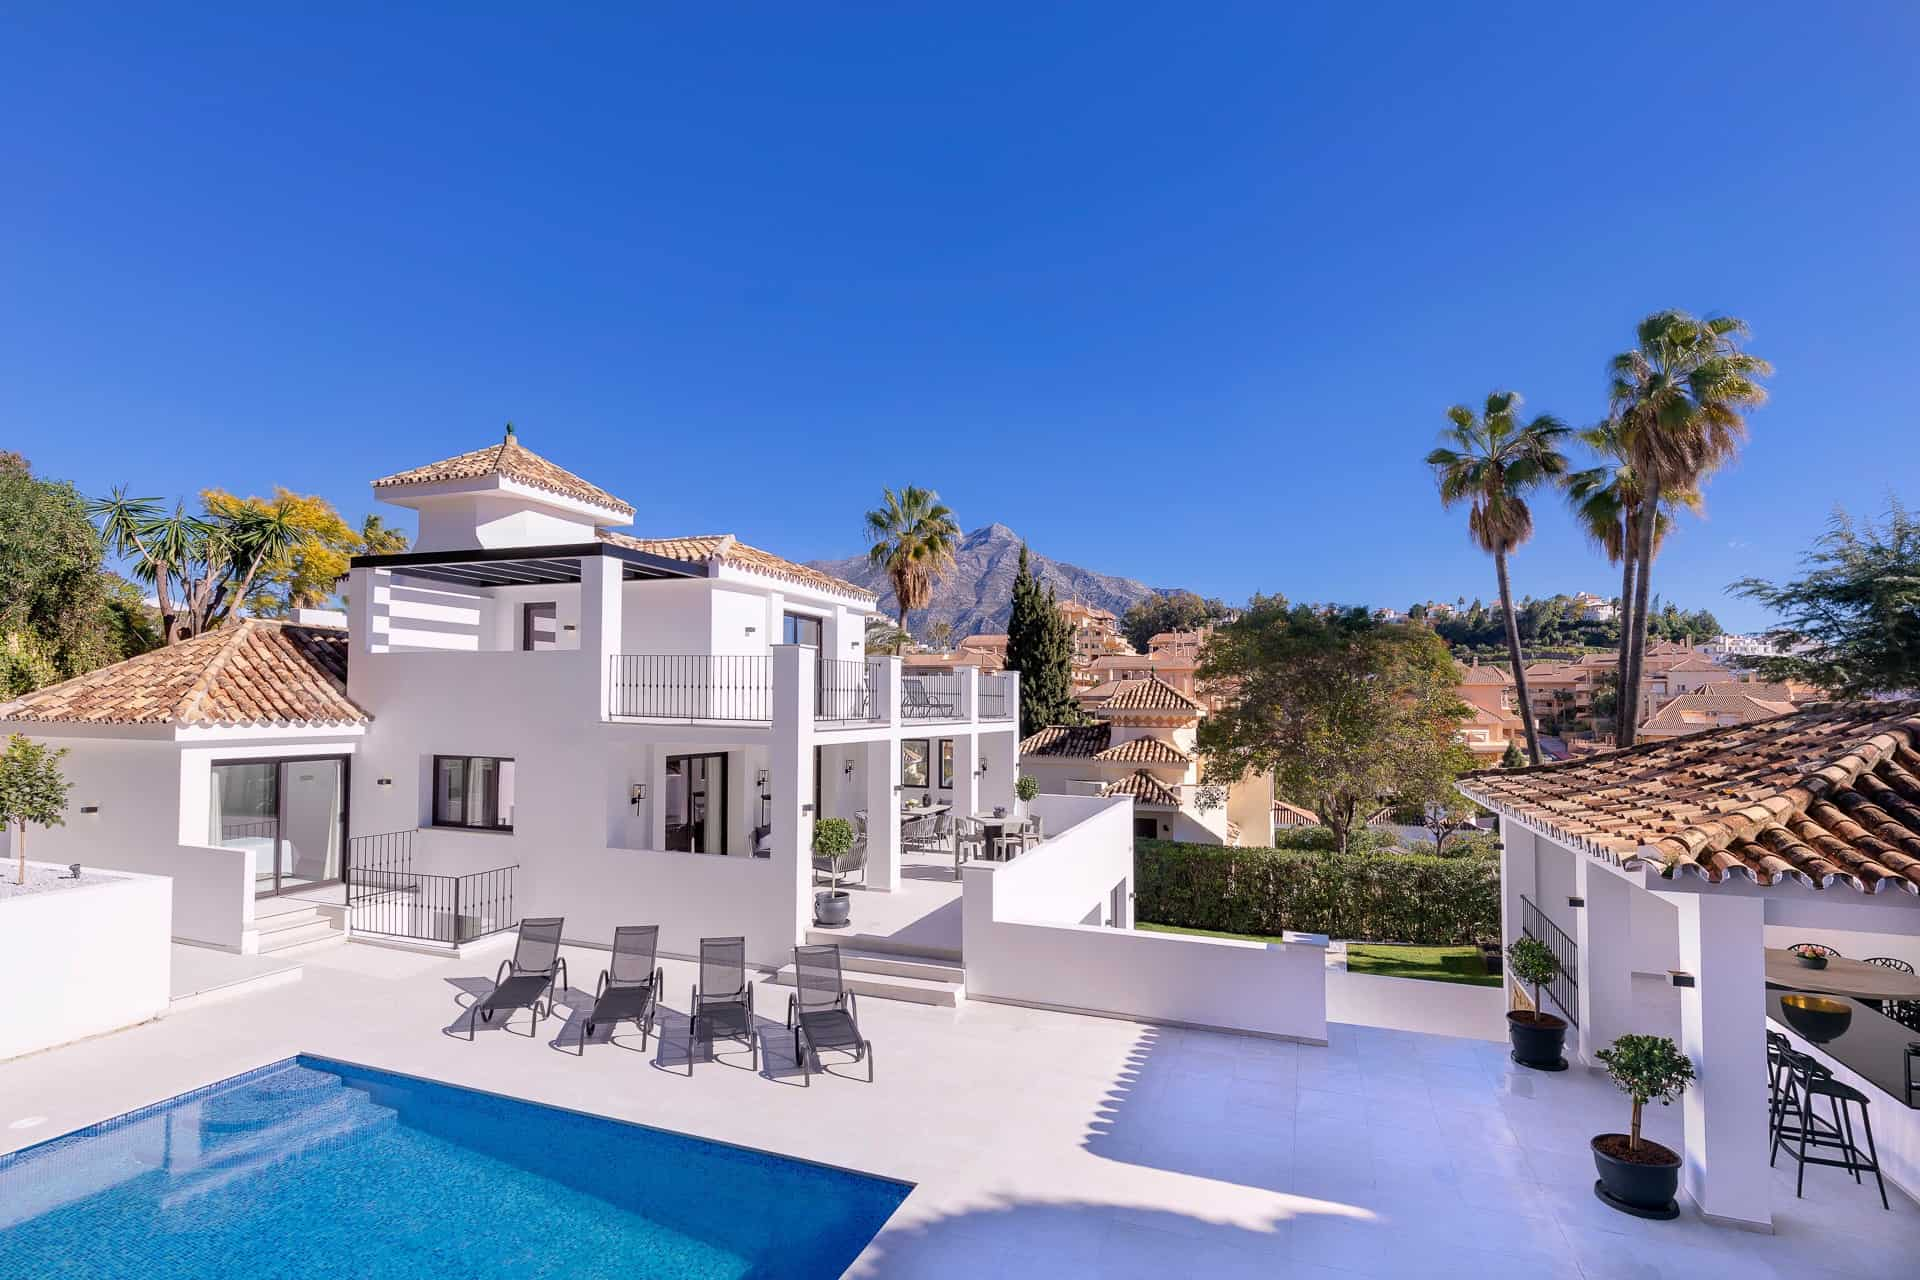 Marbella properties with fireplaces